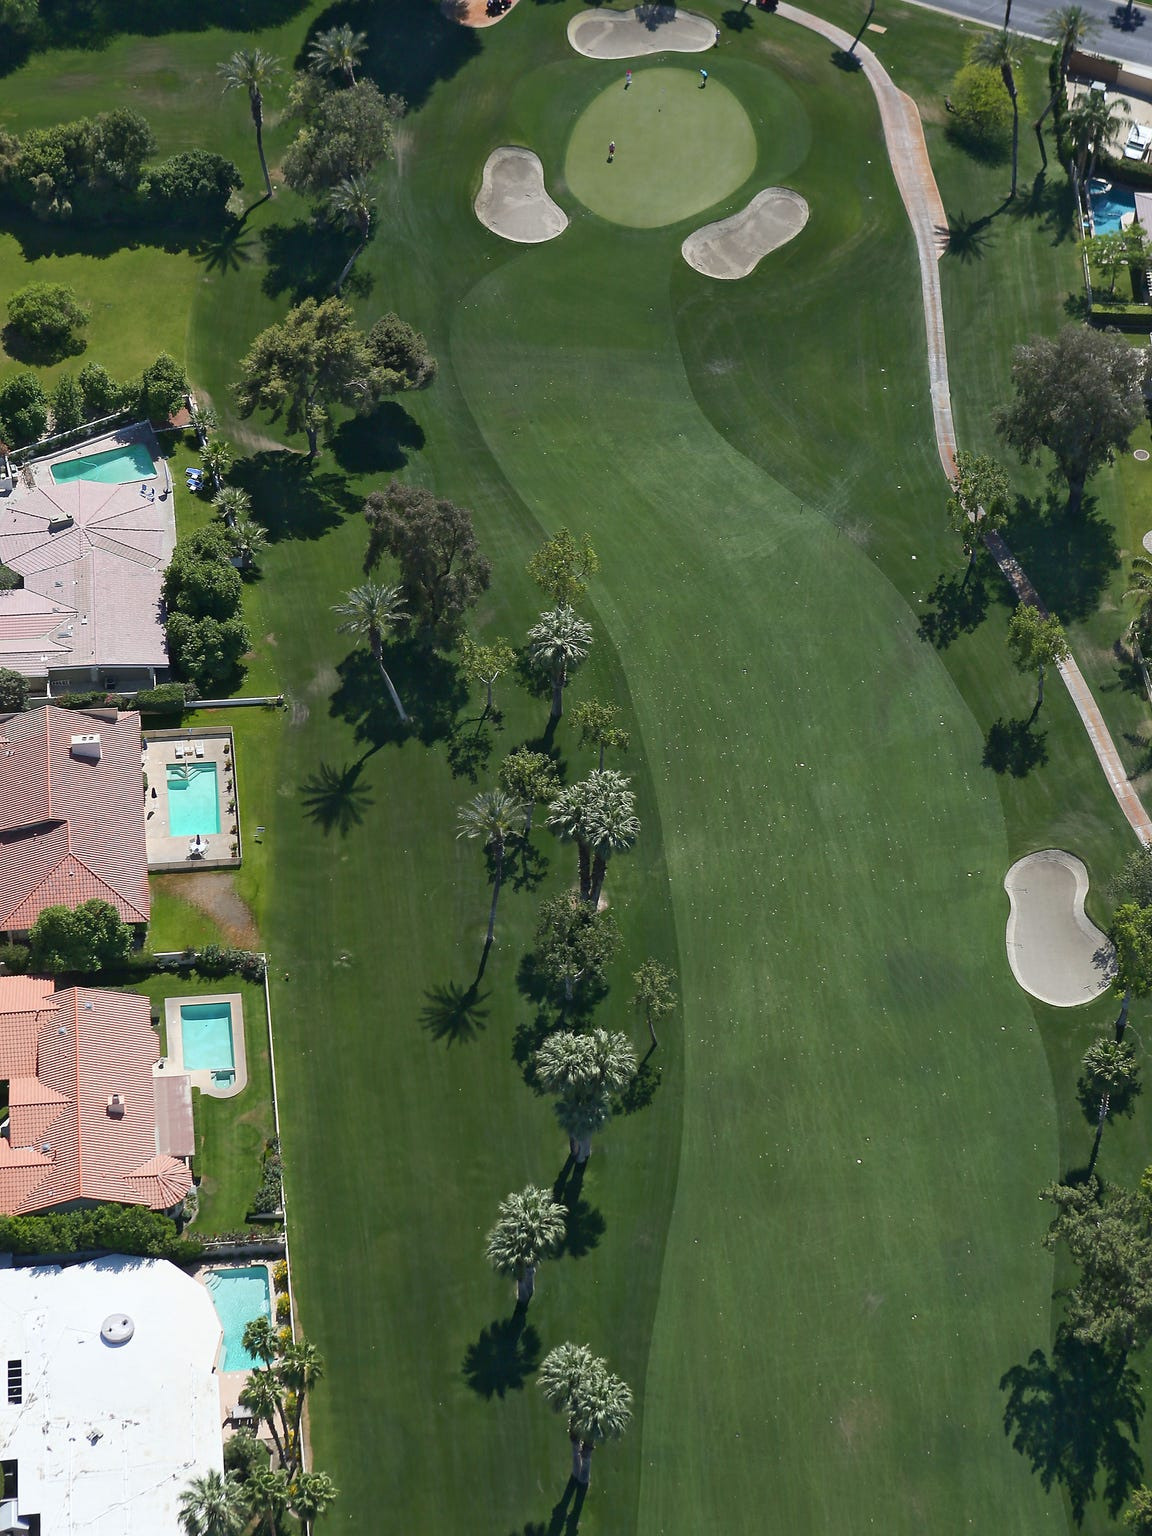 An aerial view of a Coachella Valley golf hole.